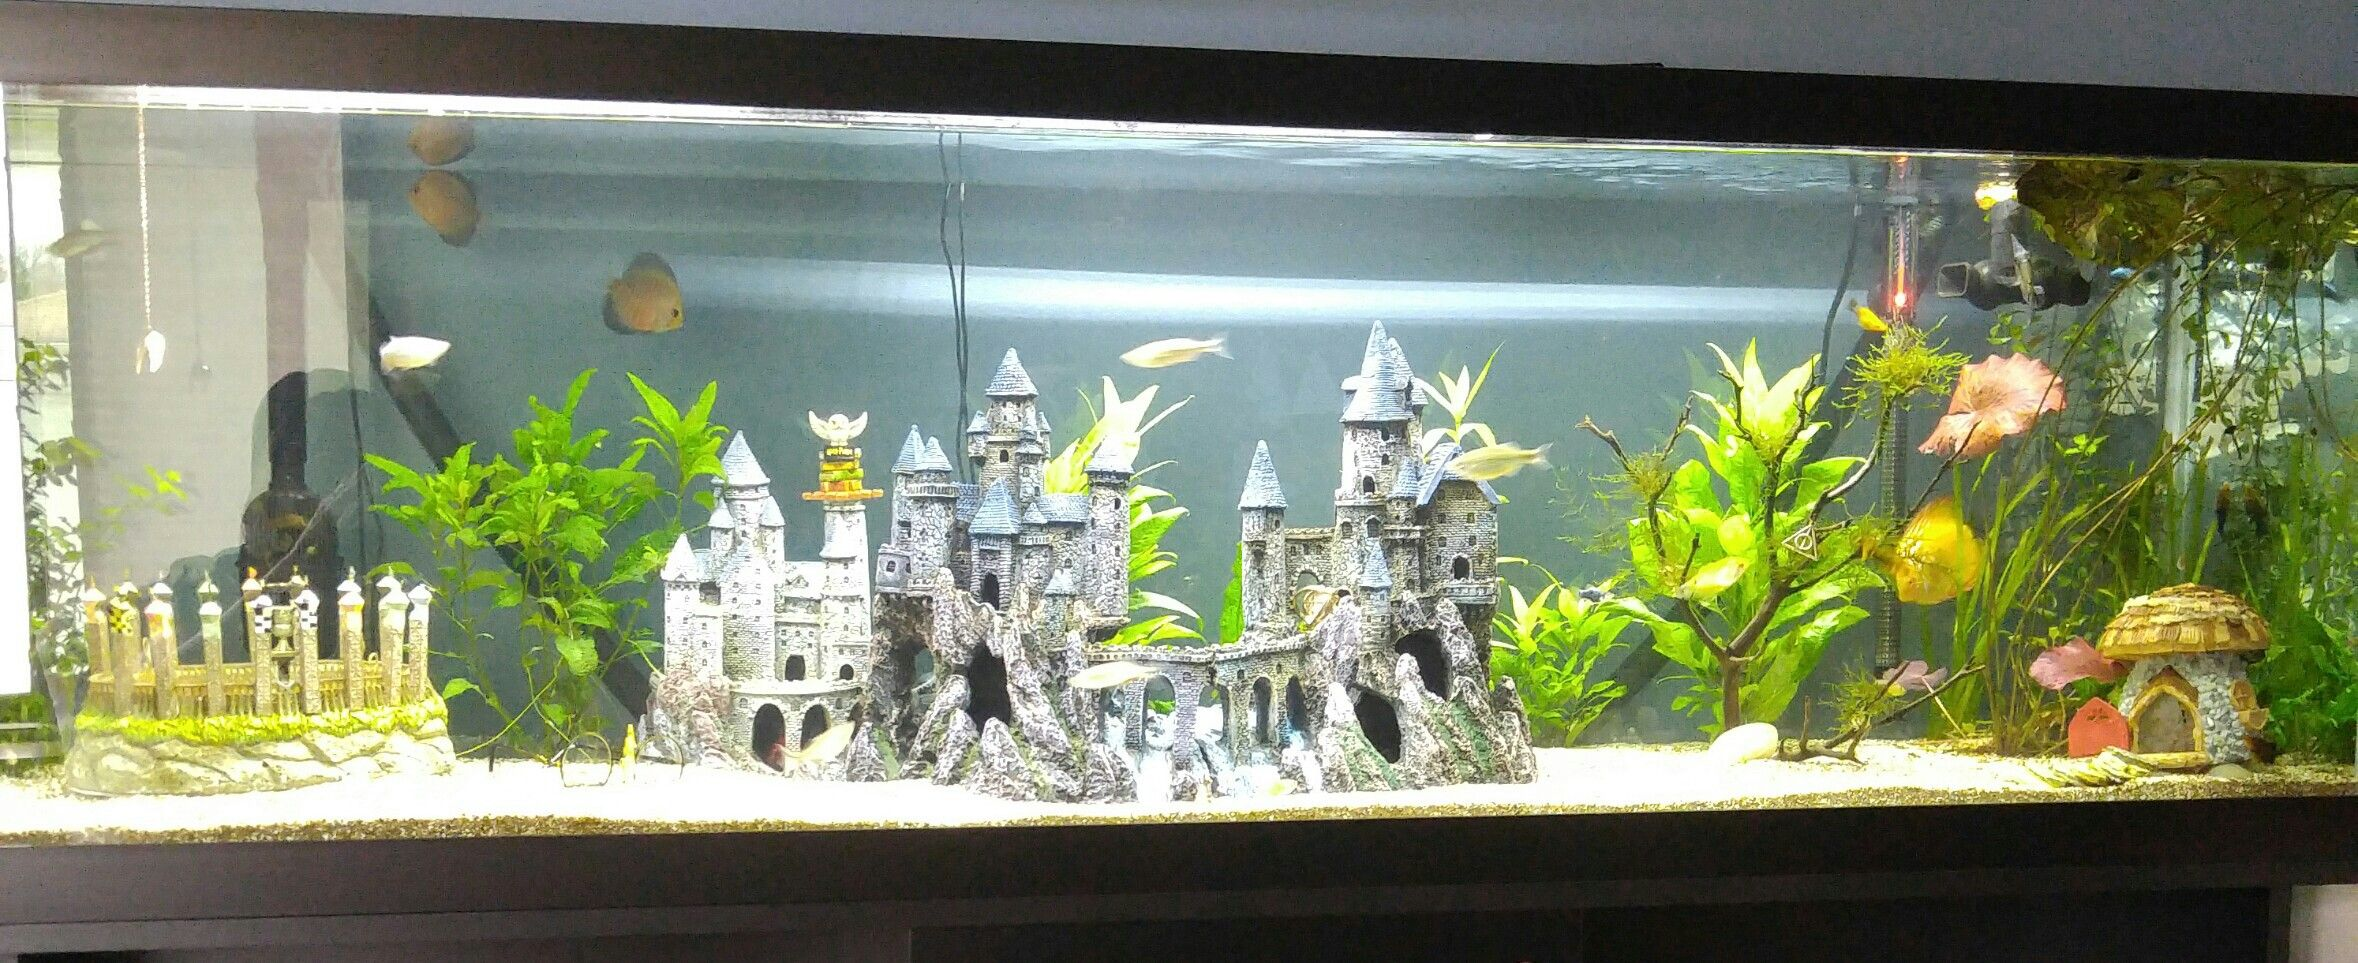 harry potter themed fish tank tropicalfishaquariumideas